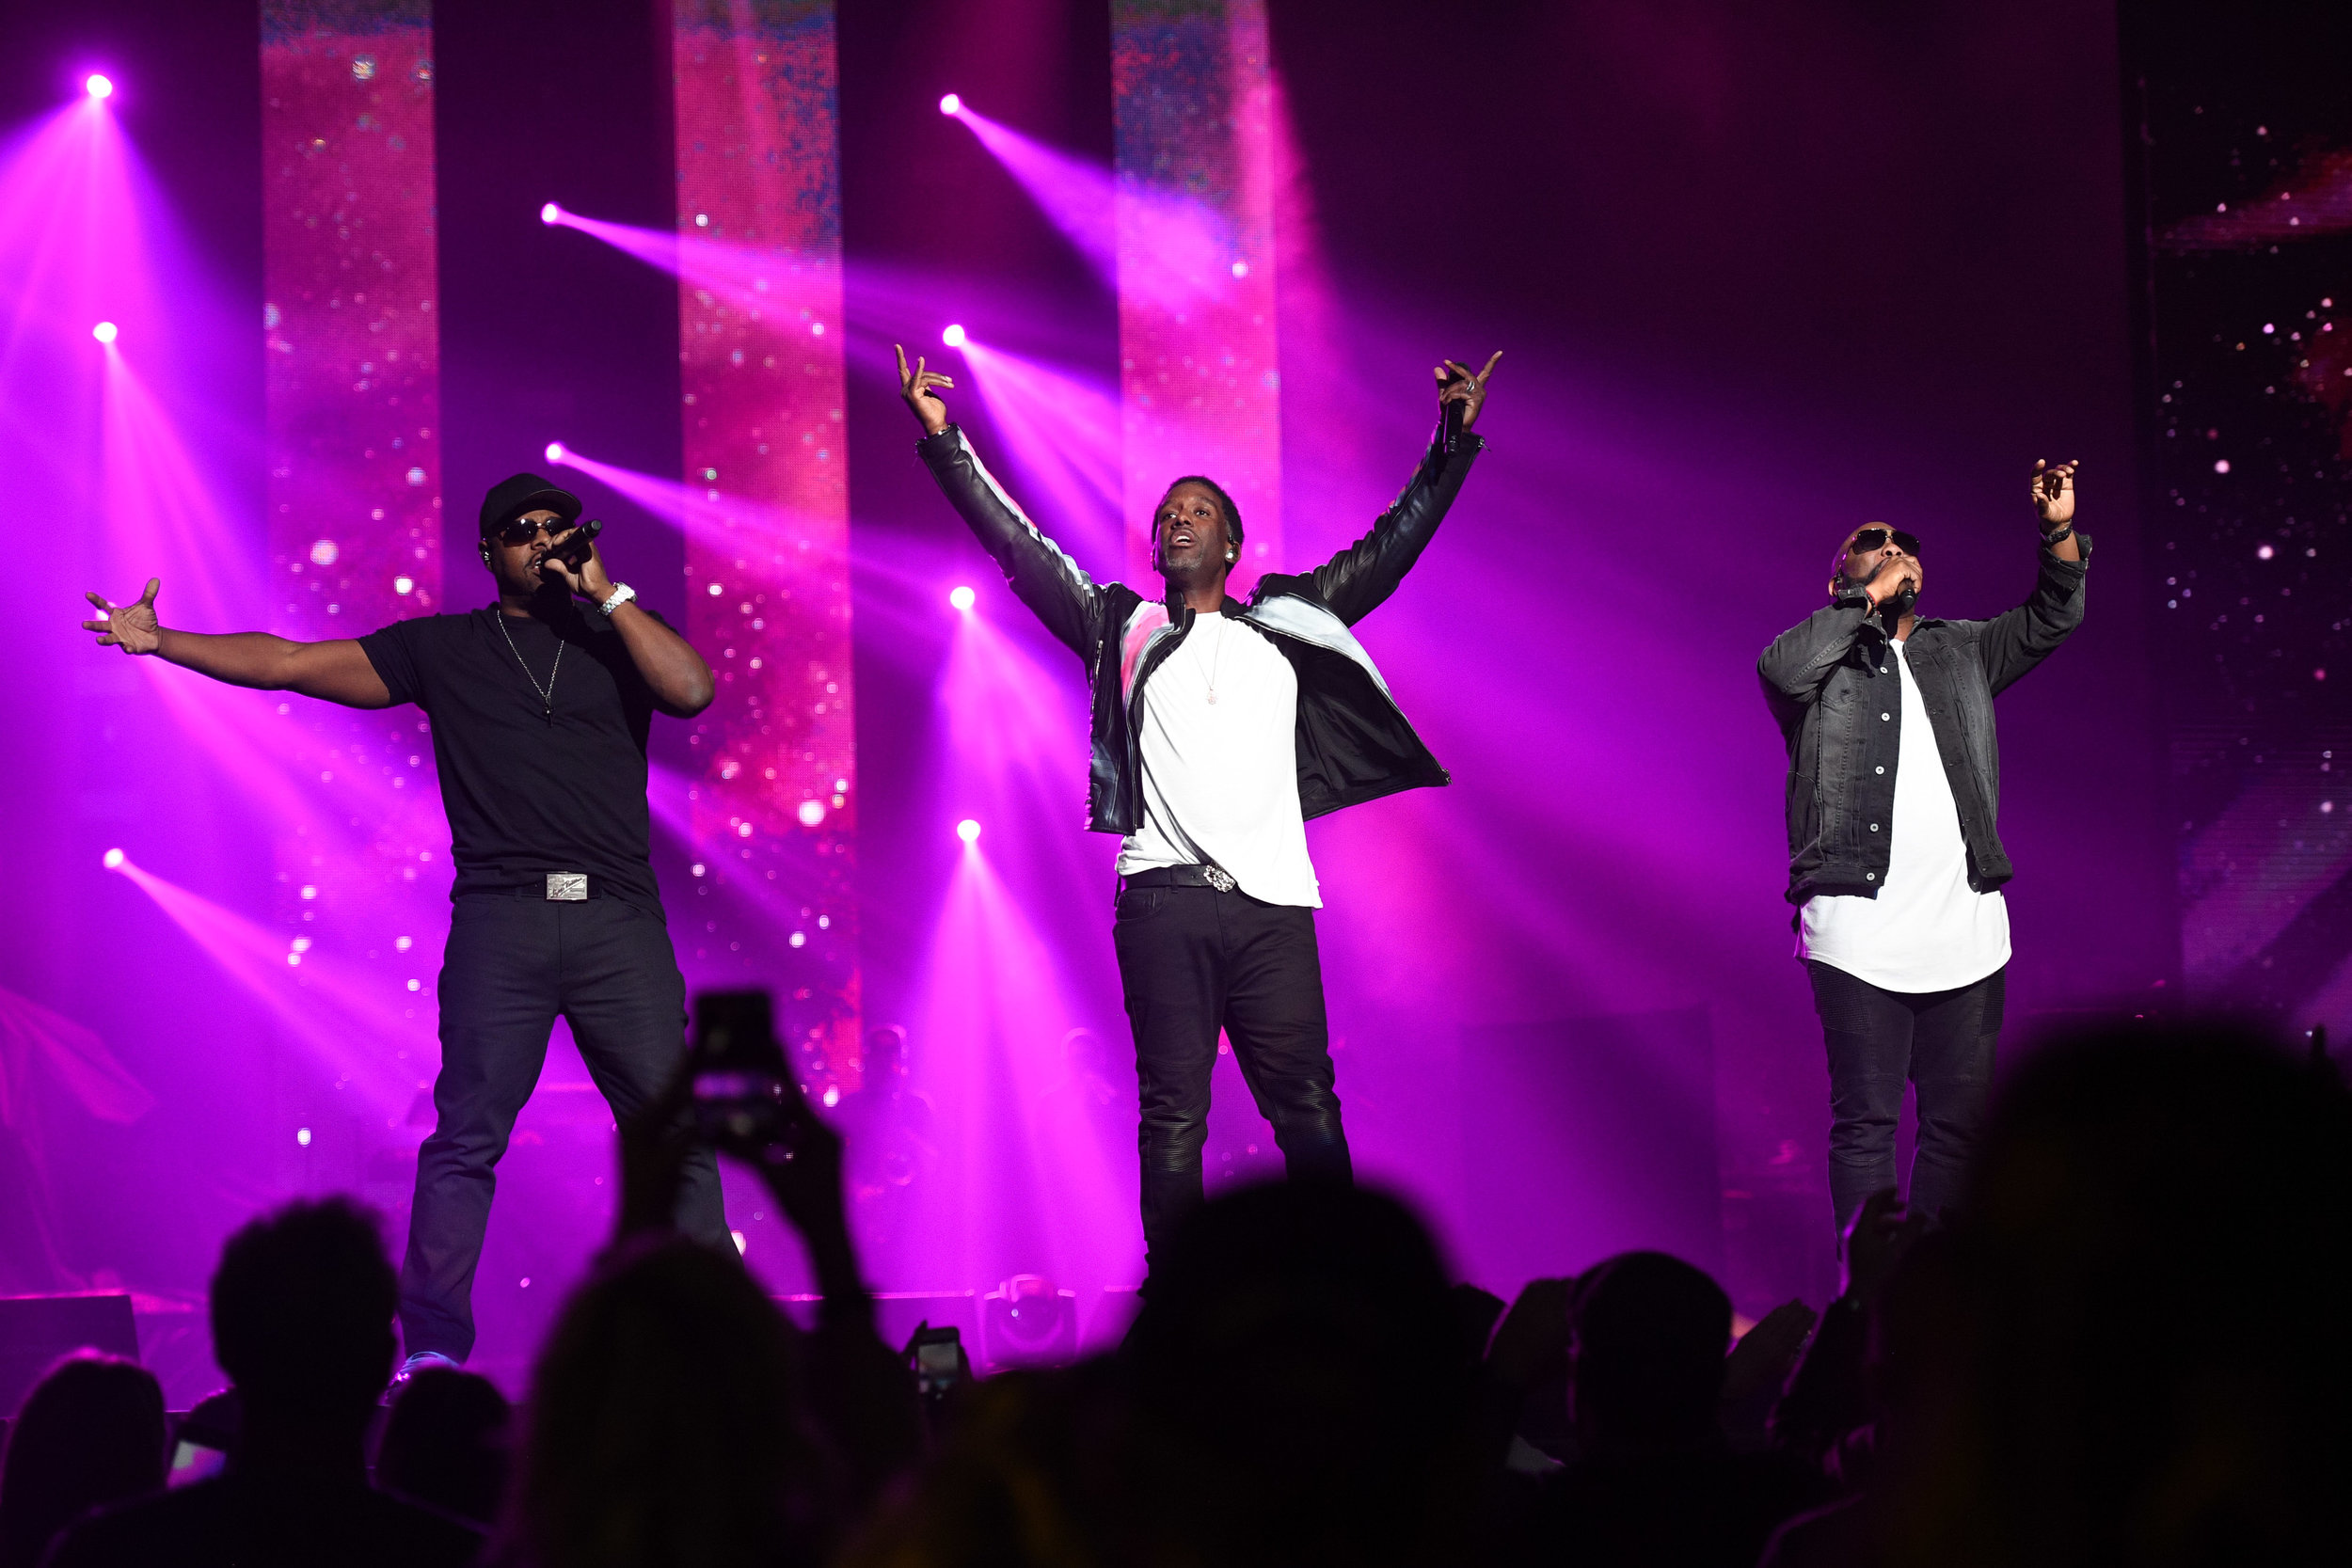 Boyz II Men at the Vegas Strong Benefit Concert in Las Vegas, Nev., Dec. 1, 2017. Photo credit: Powers Imagery